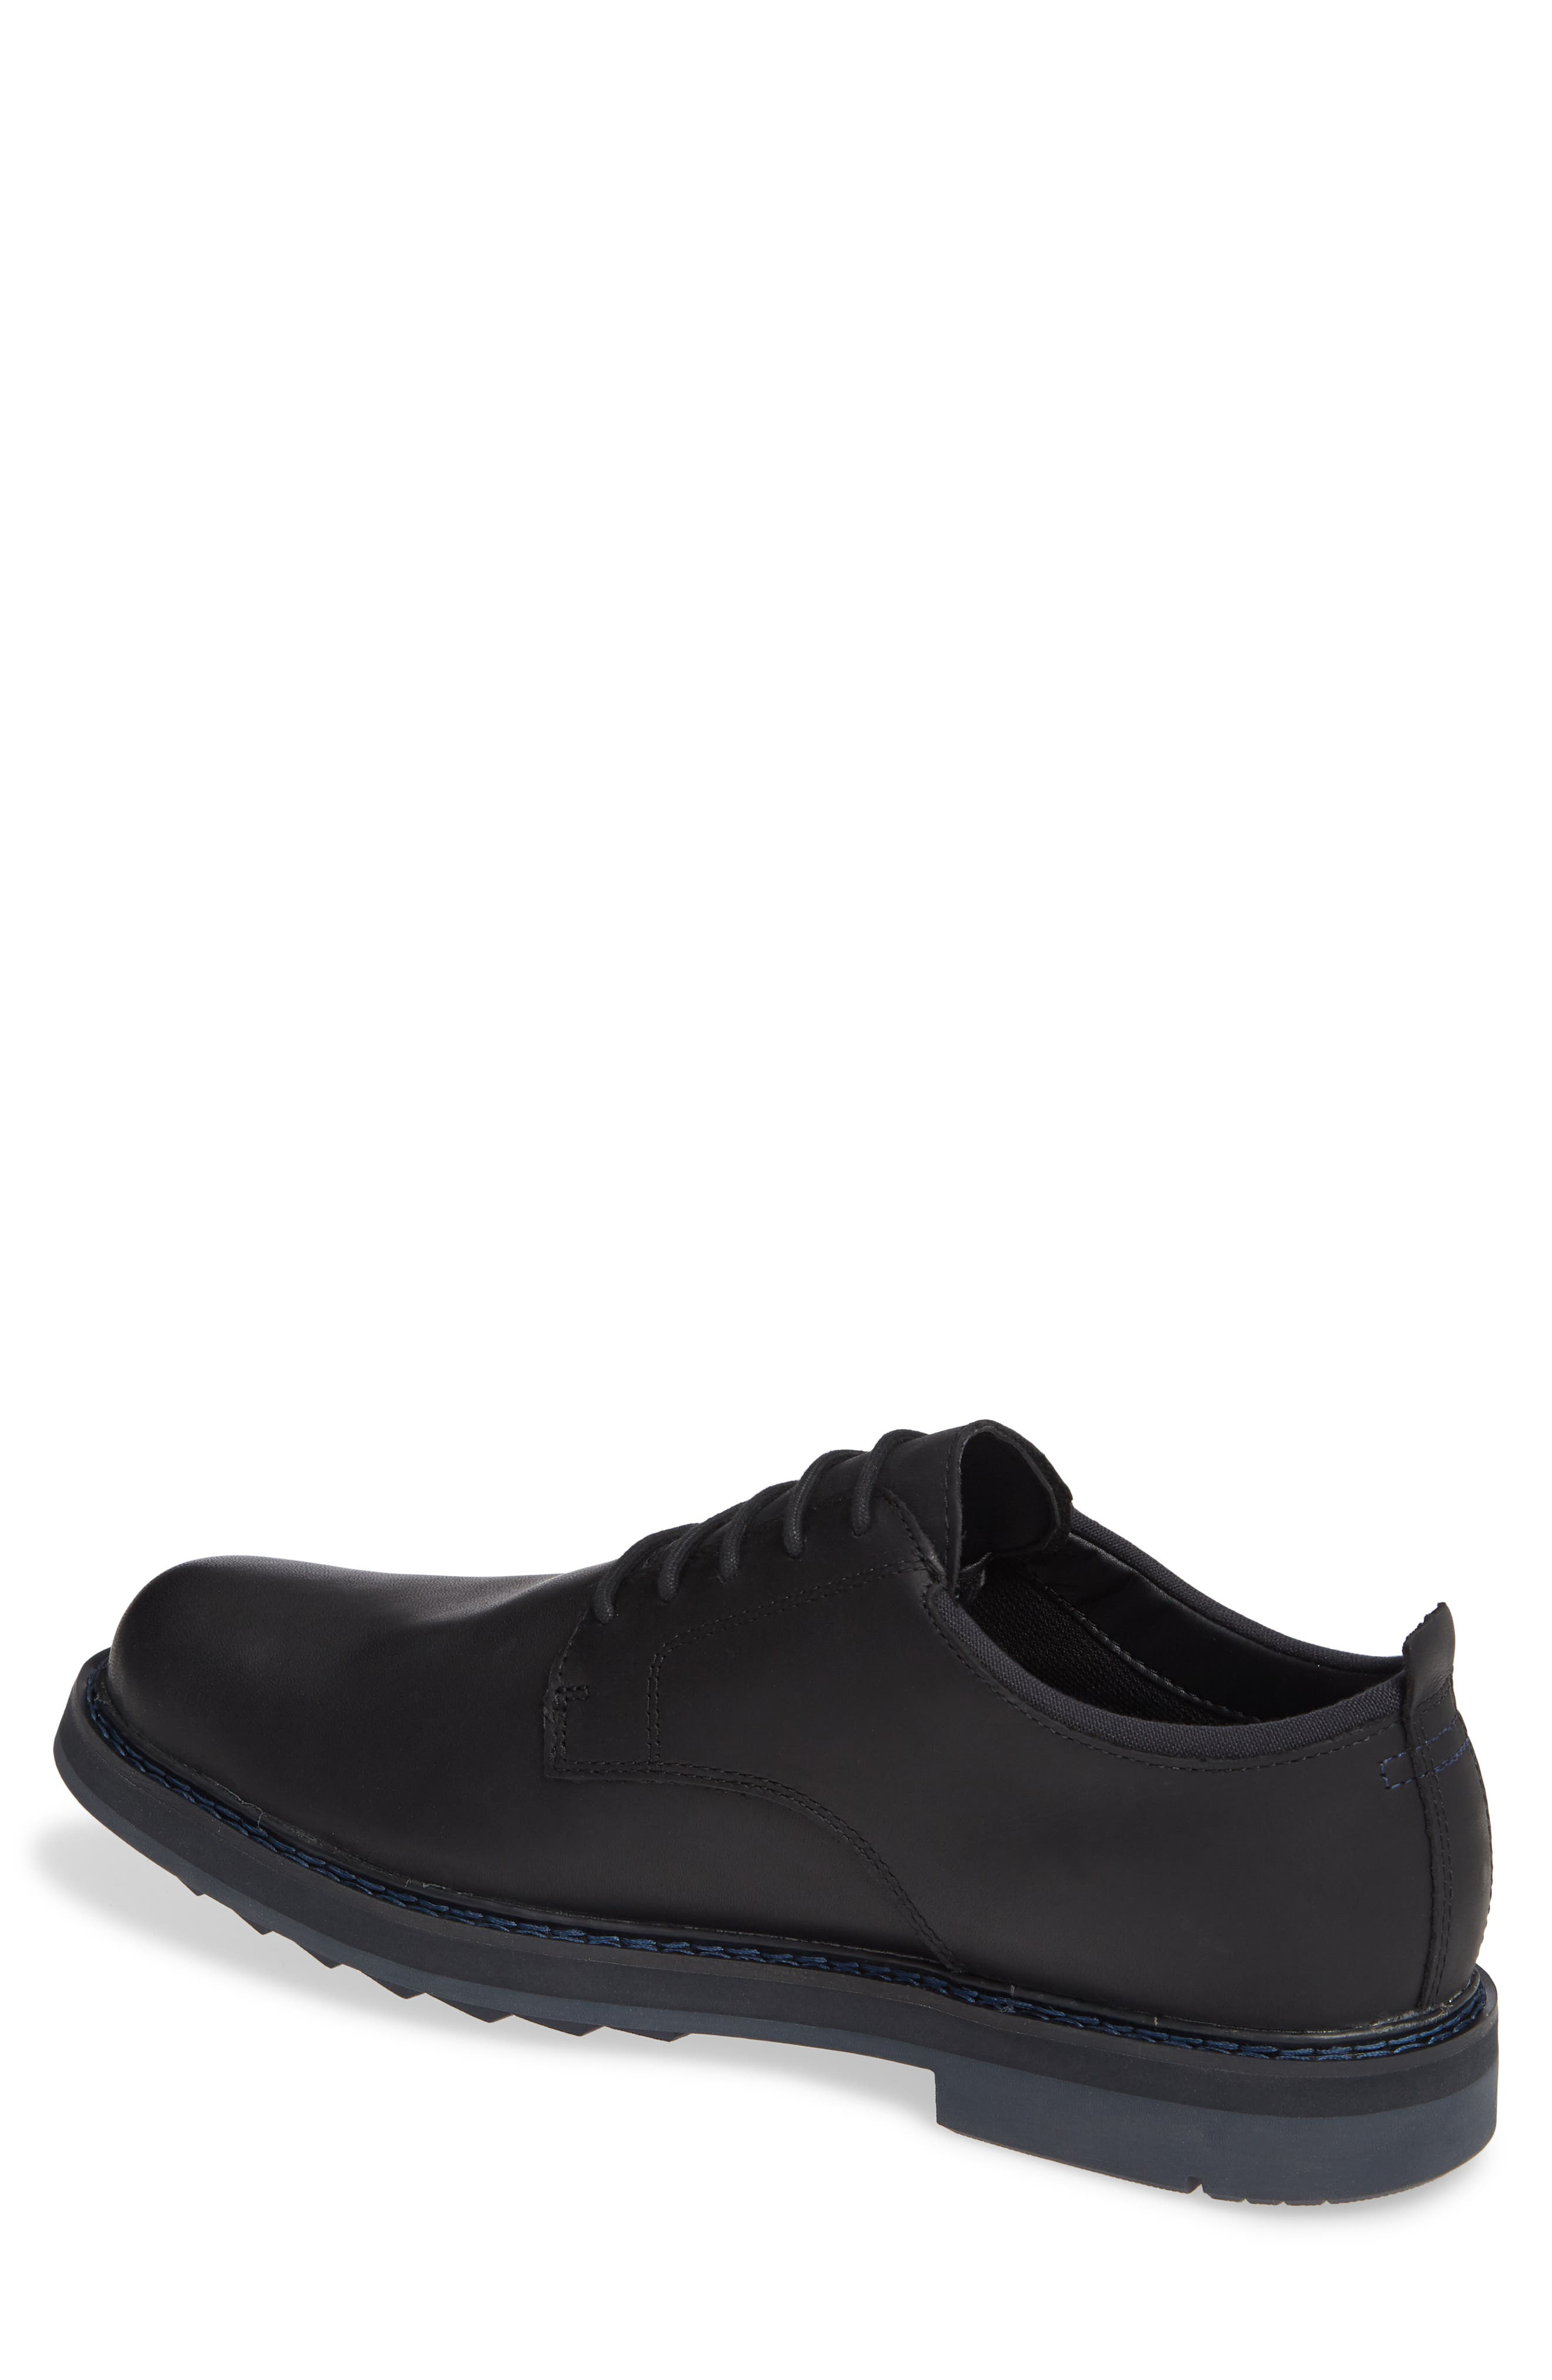 Squall Canyon Waterproof Plain Toe Derby,                             Alternate thumbnail 2, color,                             BLACK LEATHER